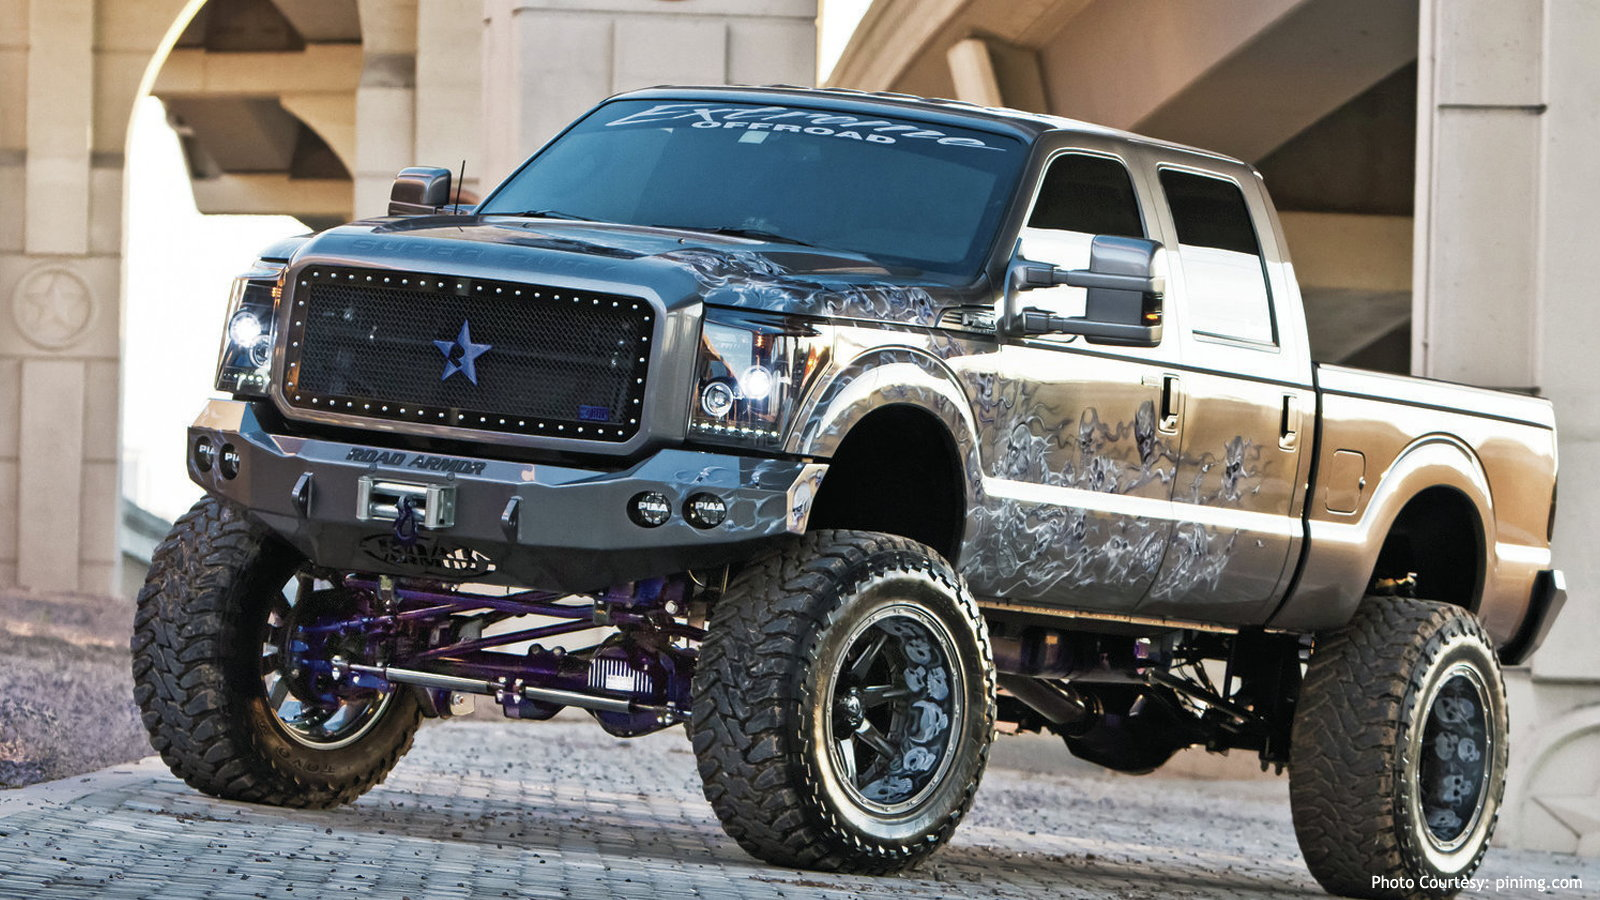 F-250 Super Duty Four Horsemen of the Apocalypse